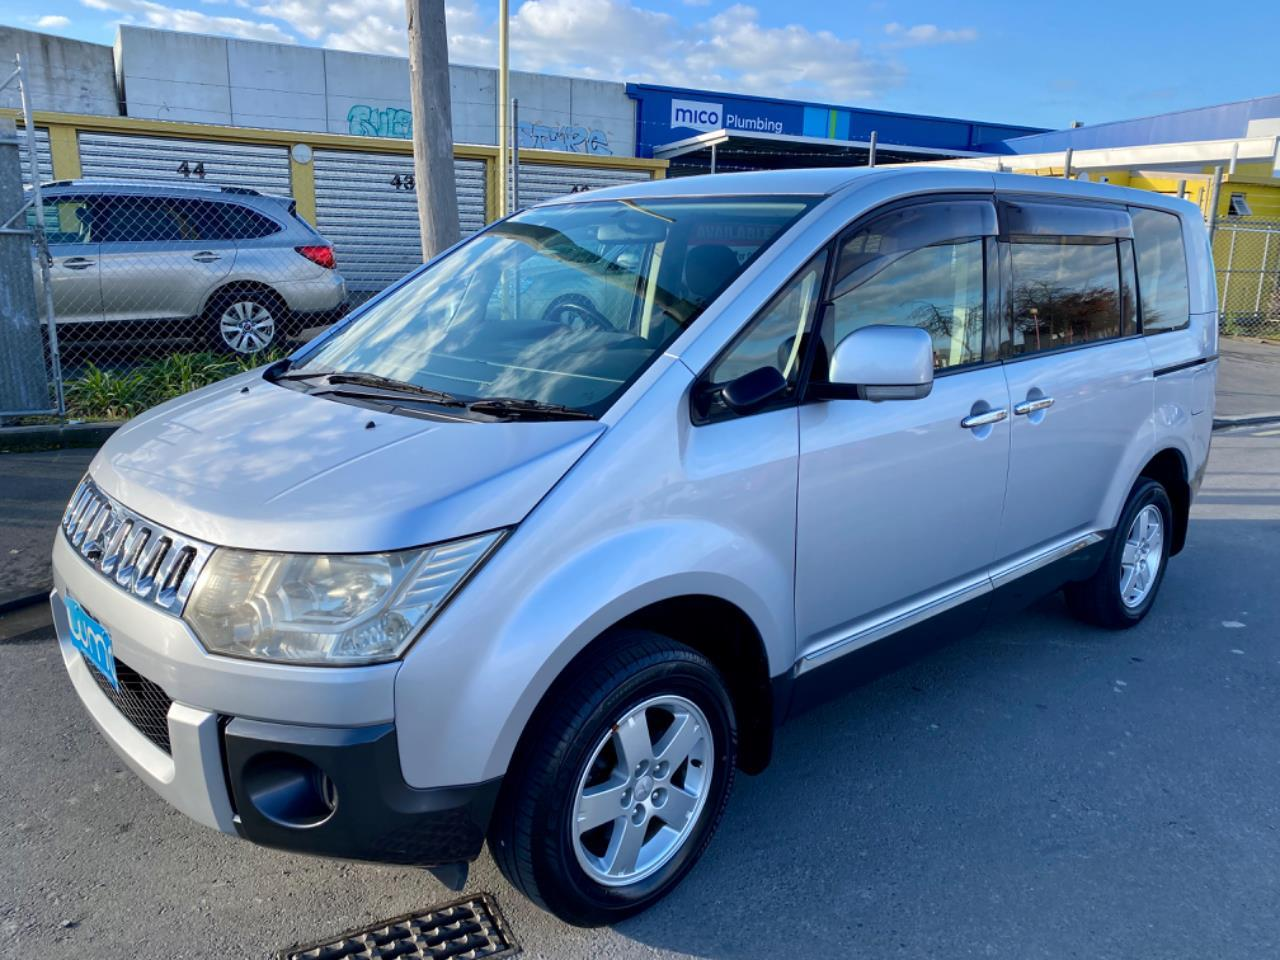 image-3, 2009 Mitsubishi Delica D:5 Exceed 7-Seater at Christchurch